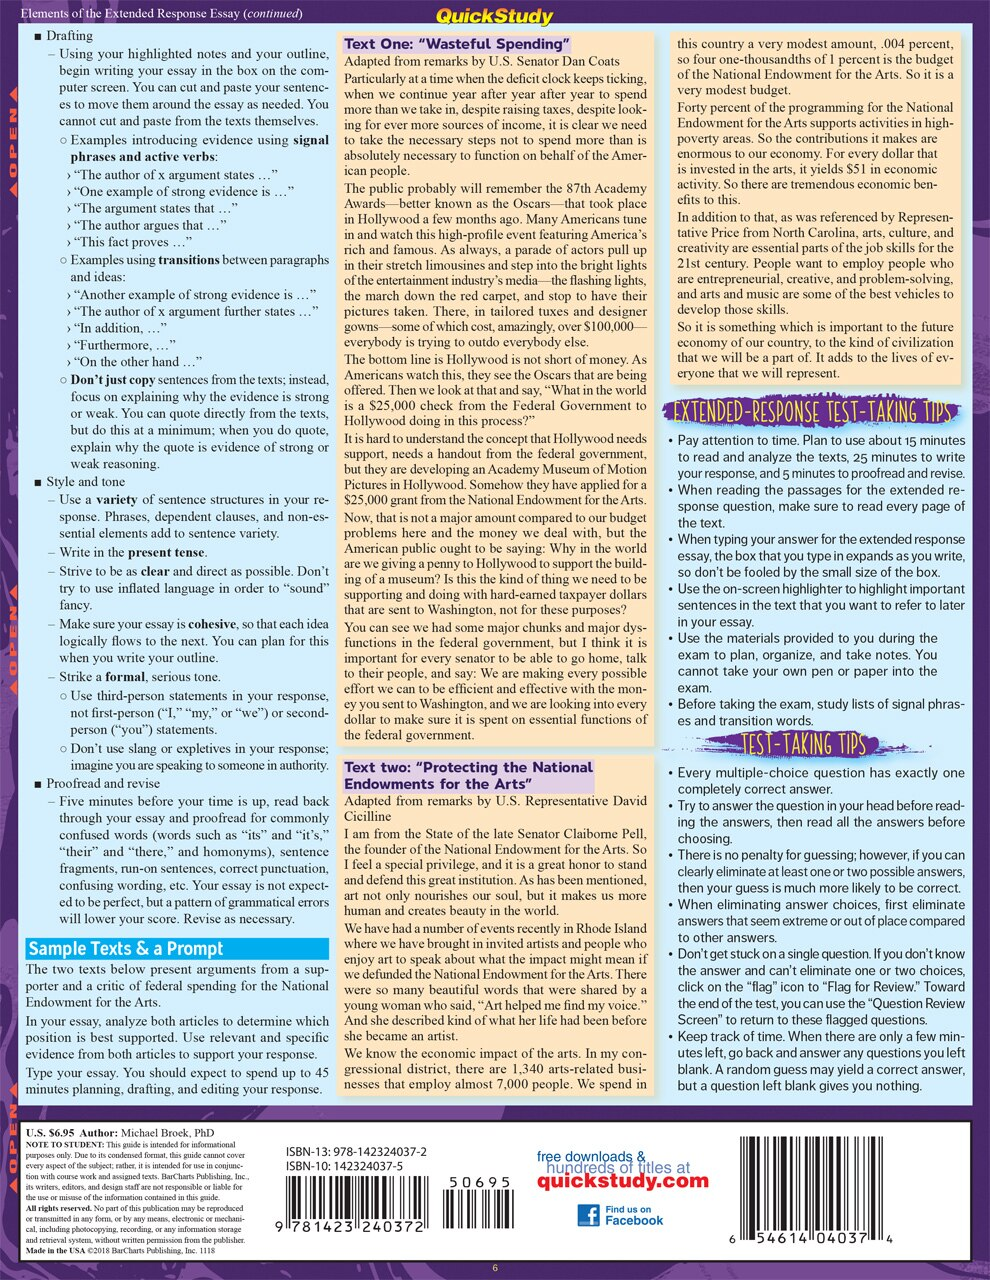 Quick Study QuickStudy GED Test Prep: Reasoning Through Language Arts Laminated Study Guide BarCharts Publishing Education Reference Guide Back Image